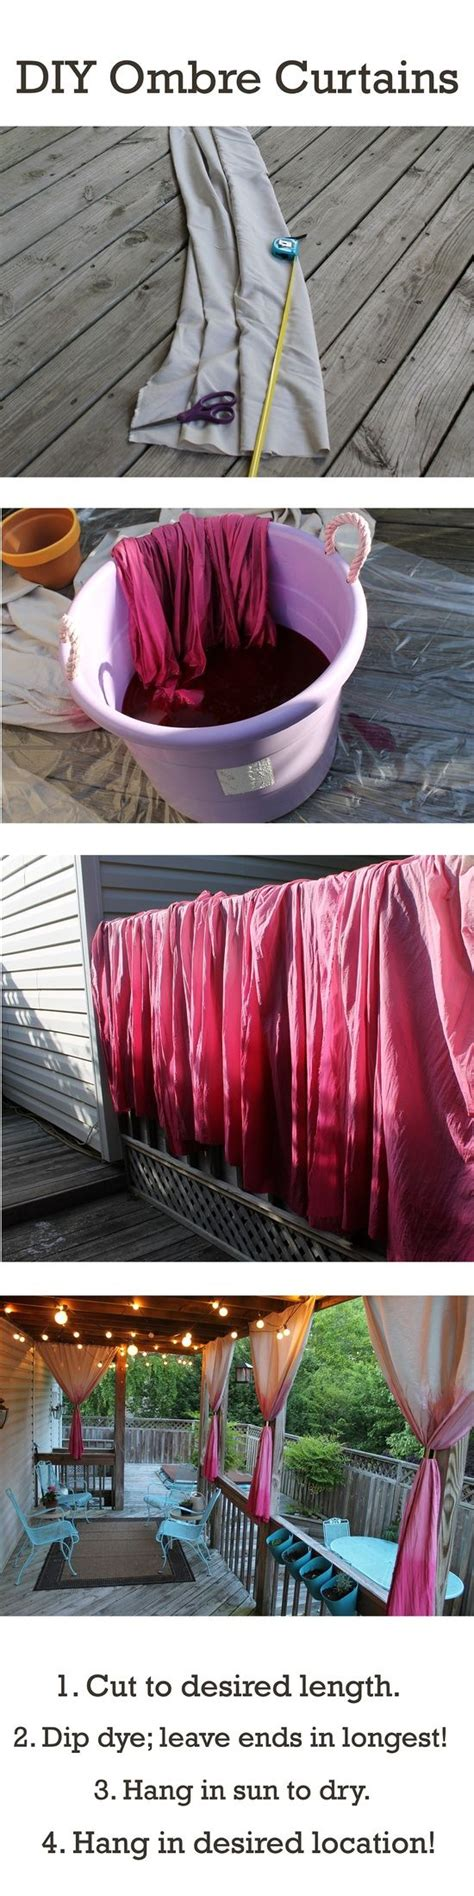 diy ombre curtains diy ombre curtains for our back porch click image to